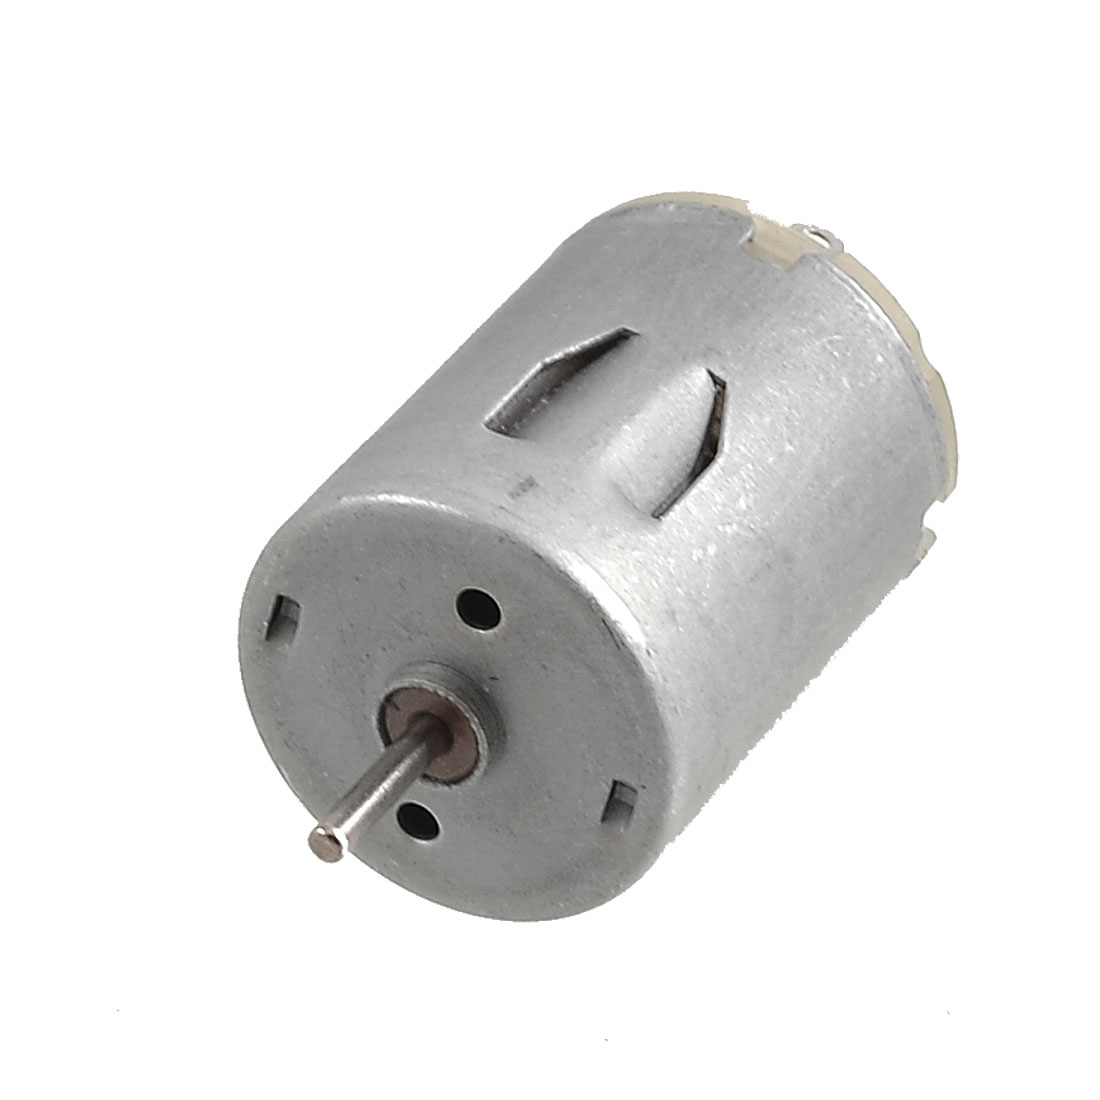 DC 4.5V 10000RPM 0.14A Electric Micro Motor for Toys Moulding